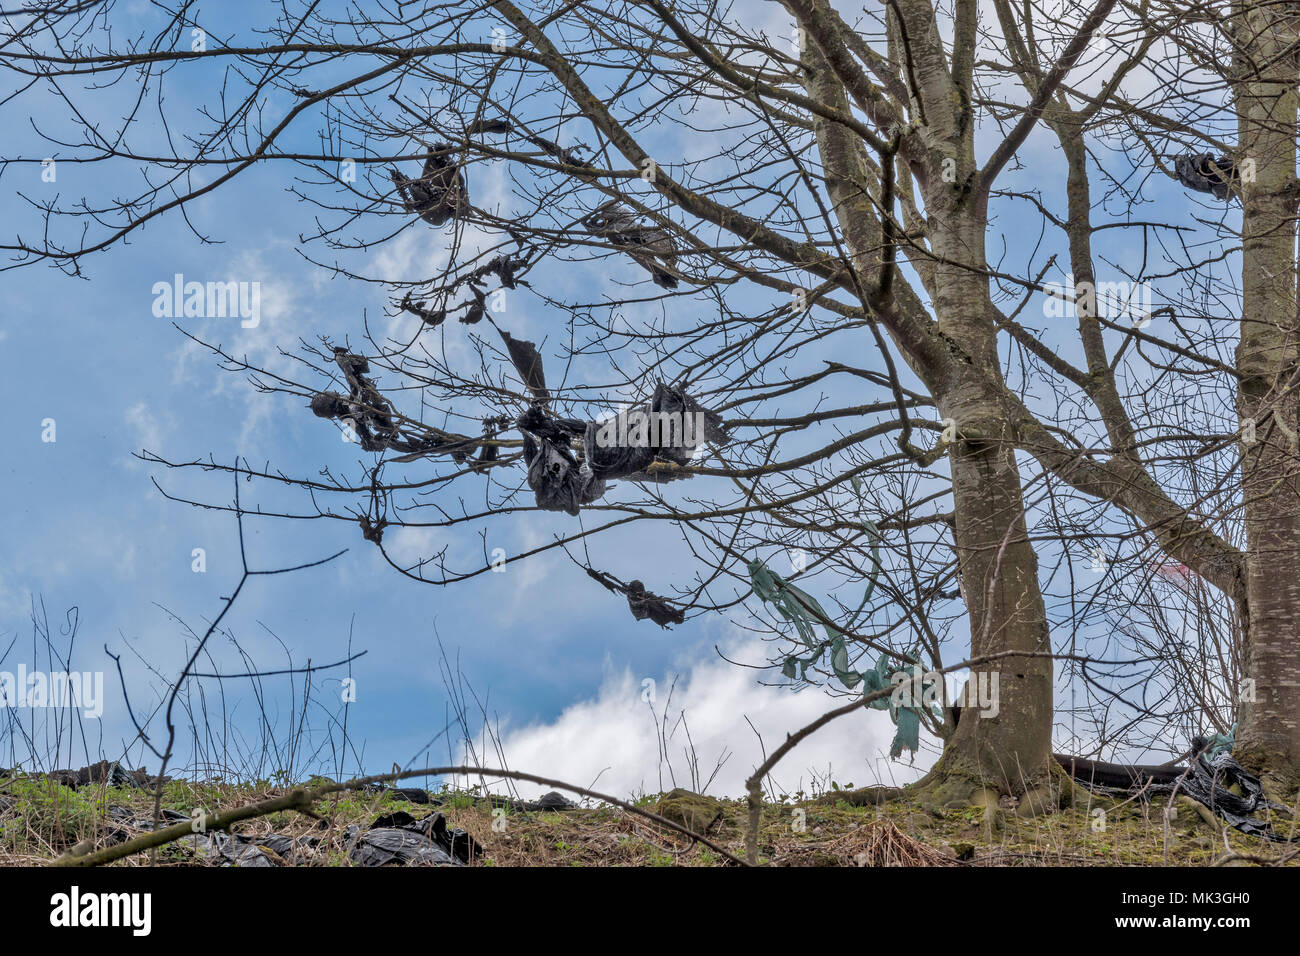 PLASTIC WRAPPERS FROM FARM BALES OF SILEAGE TORN BY WIND AND CAUGHT IN TREES - Stock Image